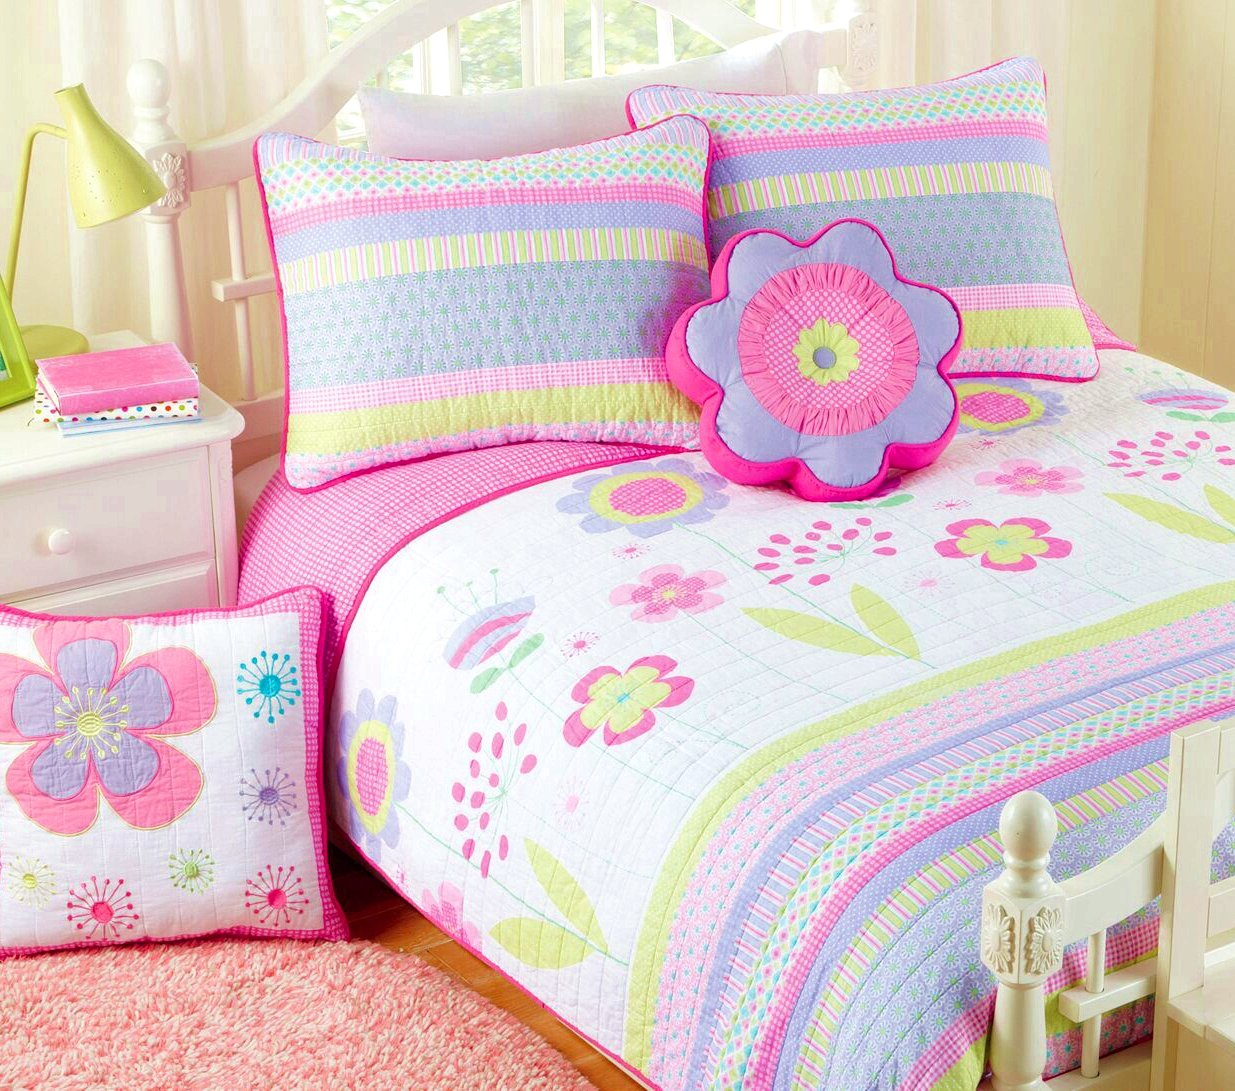 Cozy Line Home Fashions 4-Piece Blossom Bedding Quilt Set, Pink Orchid Green Reversible Bedspread, Coverlet, 100 % Cotton , Gifts for Kids , Girls (Twin - 4pc: 1 quilt + 1 sham + 2 Decorative Pillows) by Cozy Line Home Fashions